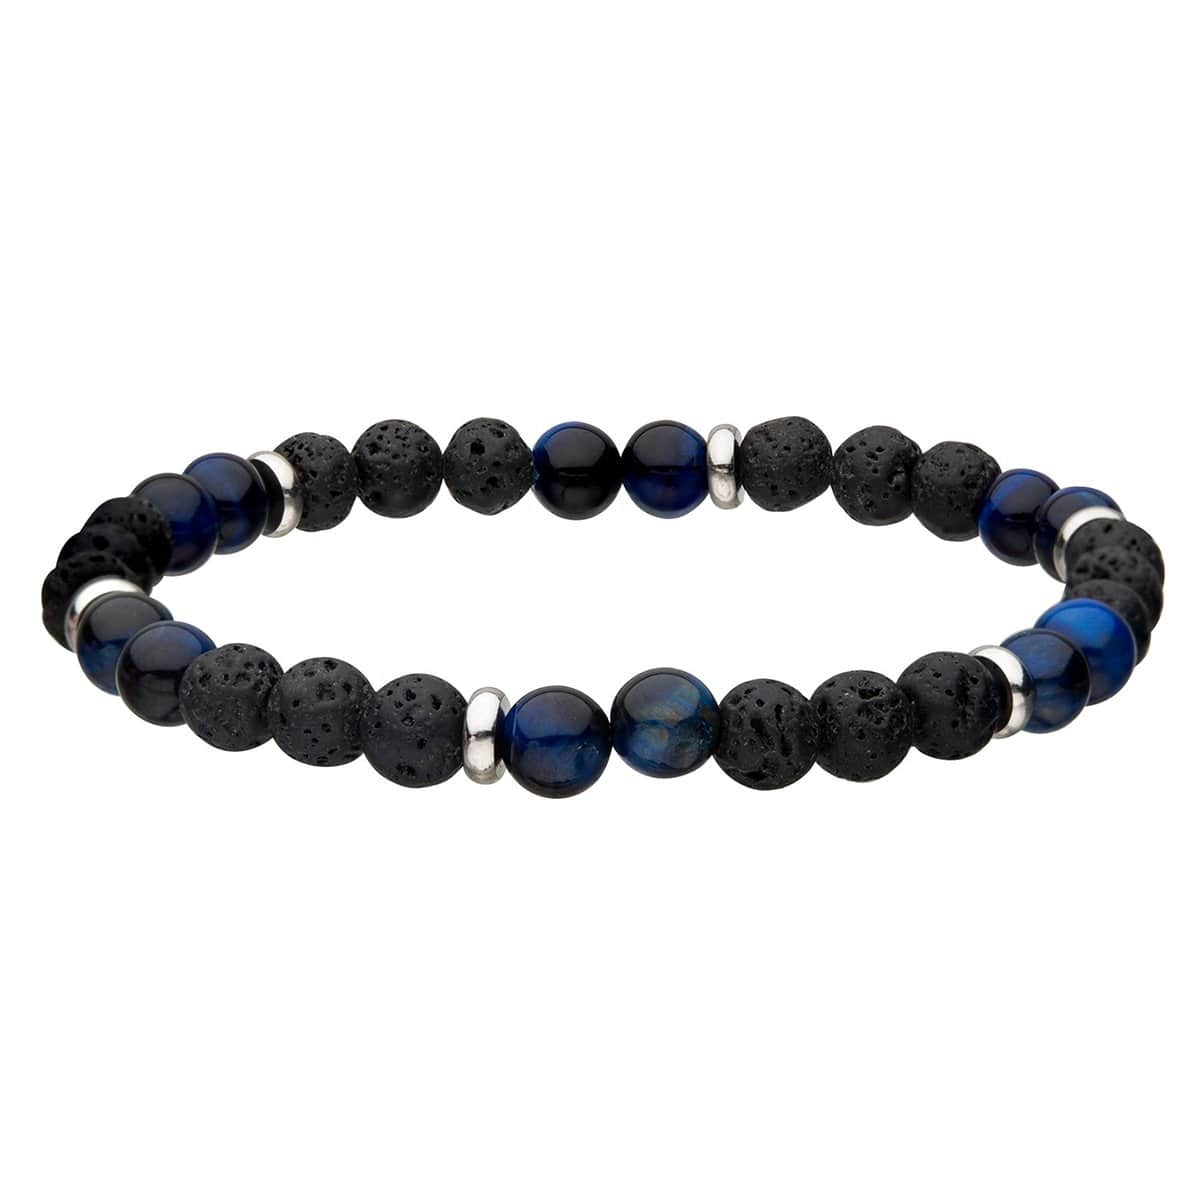 Silver Stainless Steel with Blue Tiger's Eye & Black Molten Lava Bead Expandable Bracelet